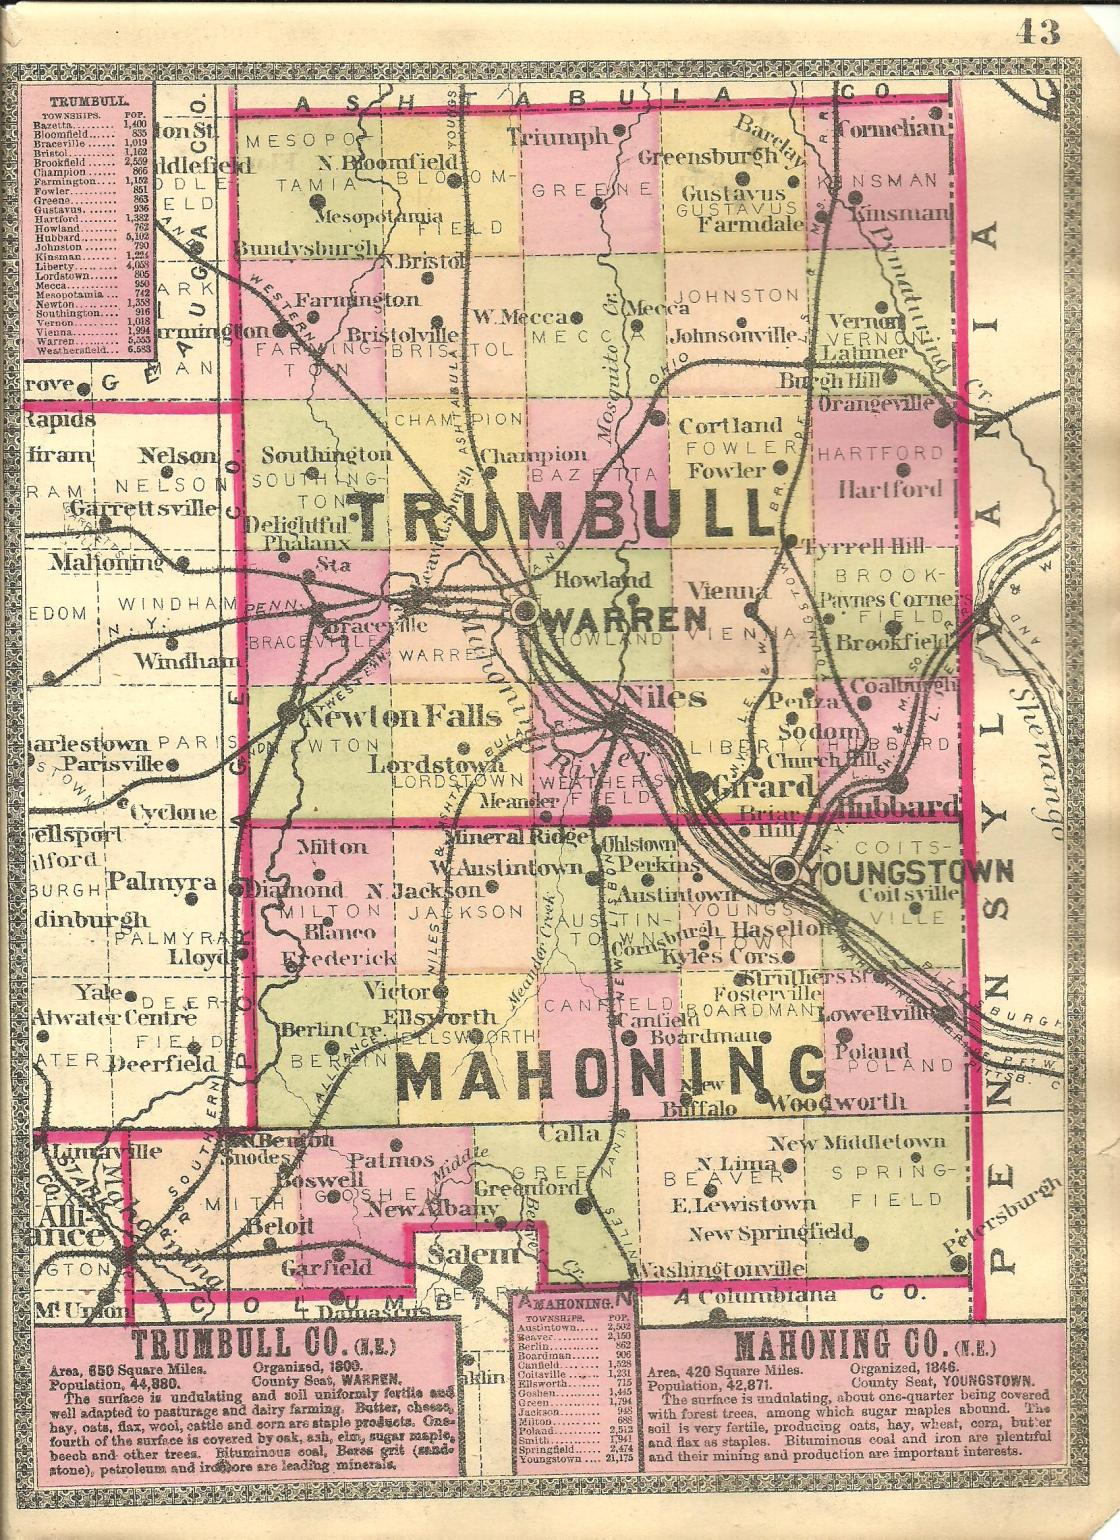 Mahoning County – Ohio Ghost Town Exploration Co. on